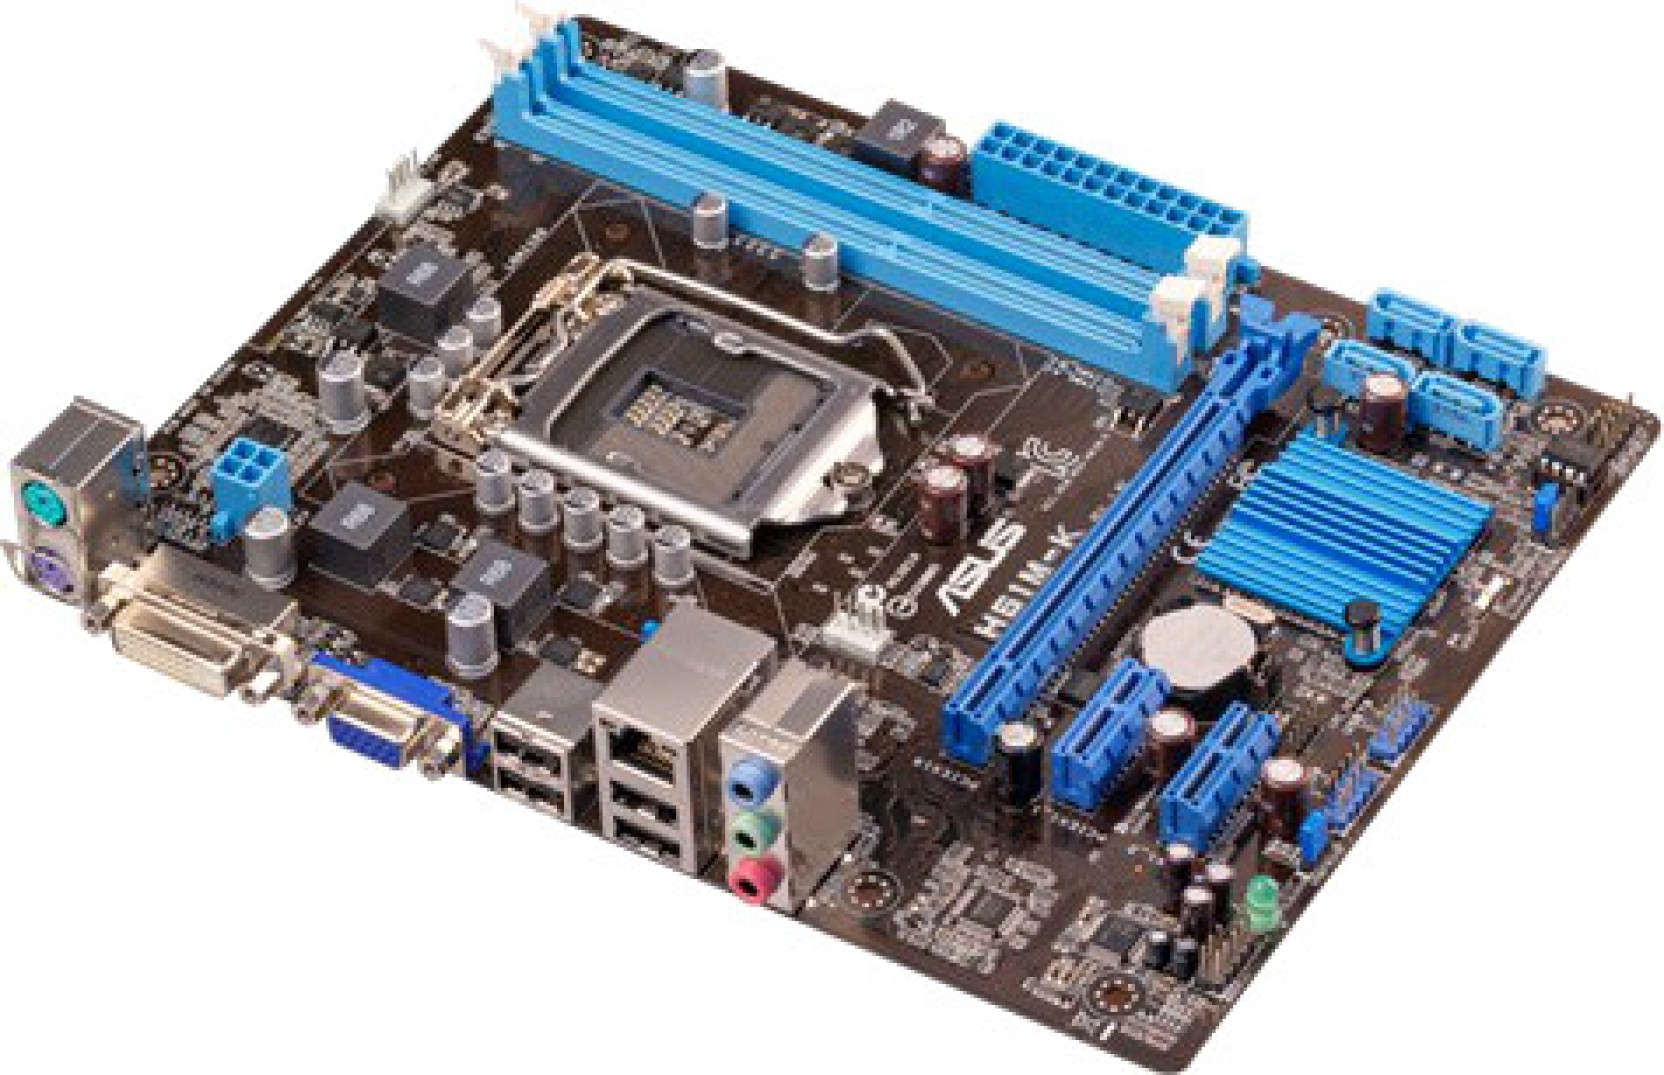 Asus H61m K Motherboard Original New Toshiba Integrated Circuit O 5200 1 Of See More Add To Cart